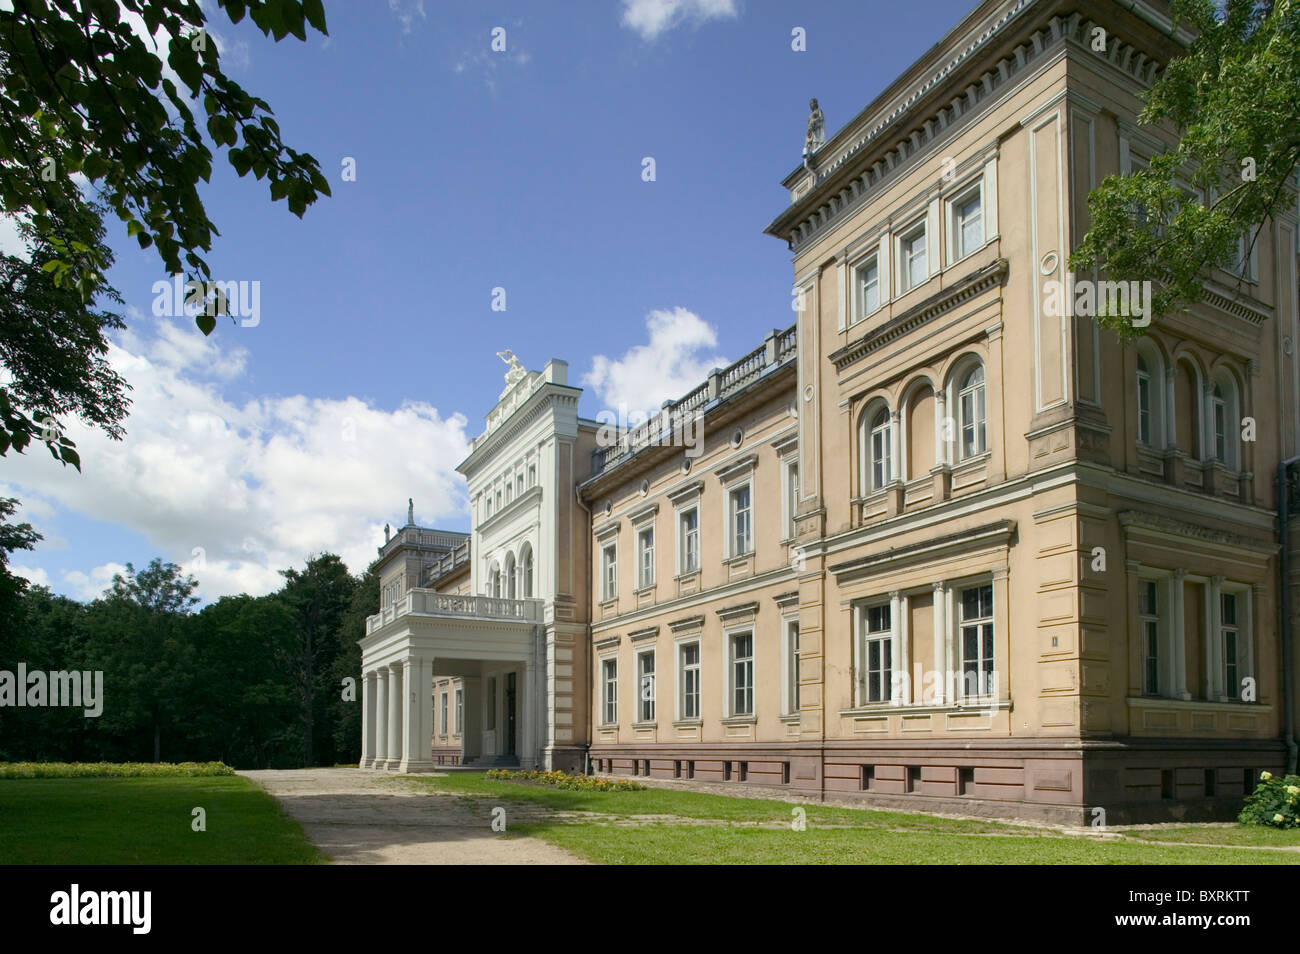 Lithuania, Plunge, Plunge Manor, View of exterior of building - Stock Image